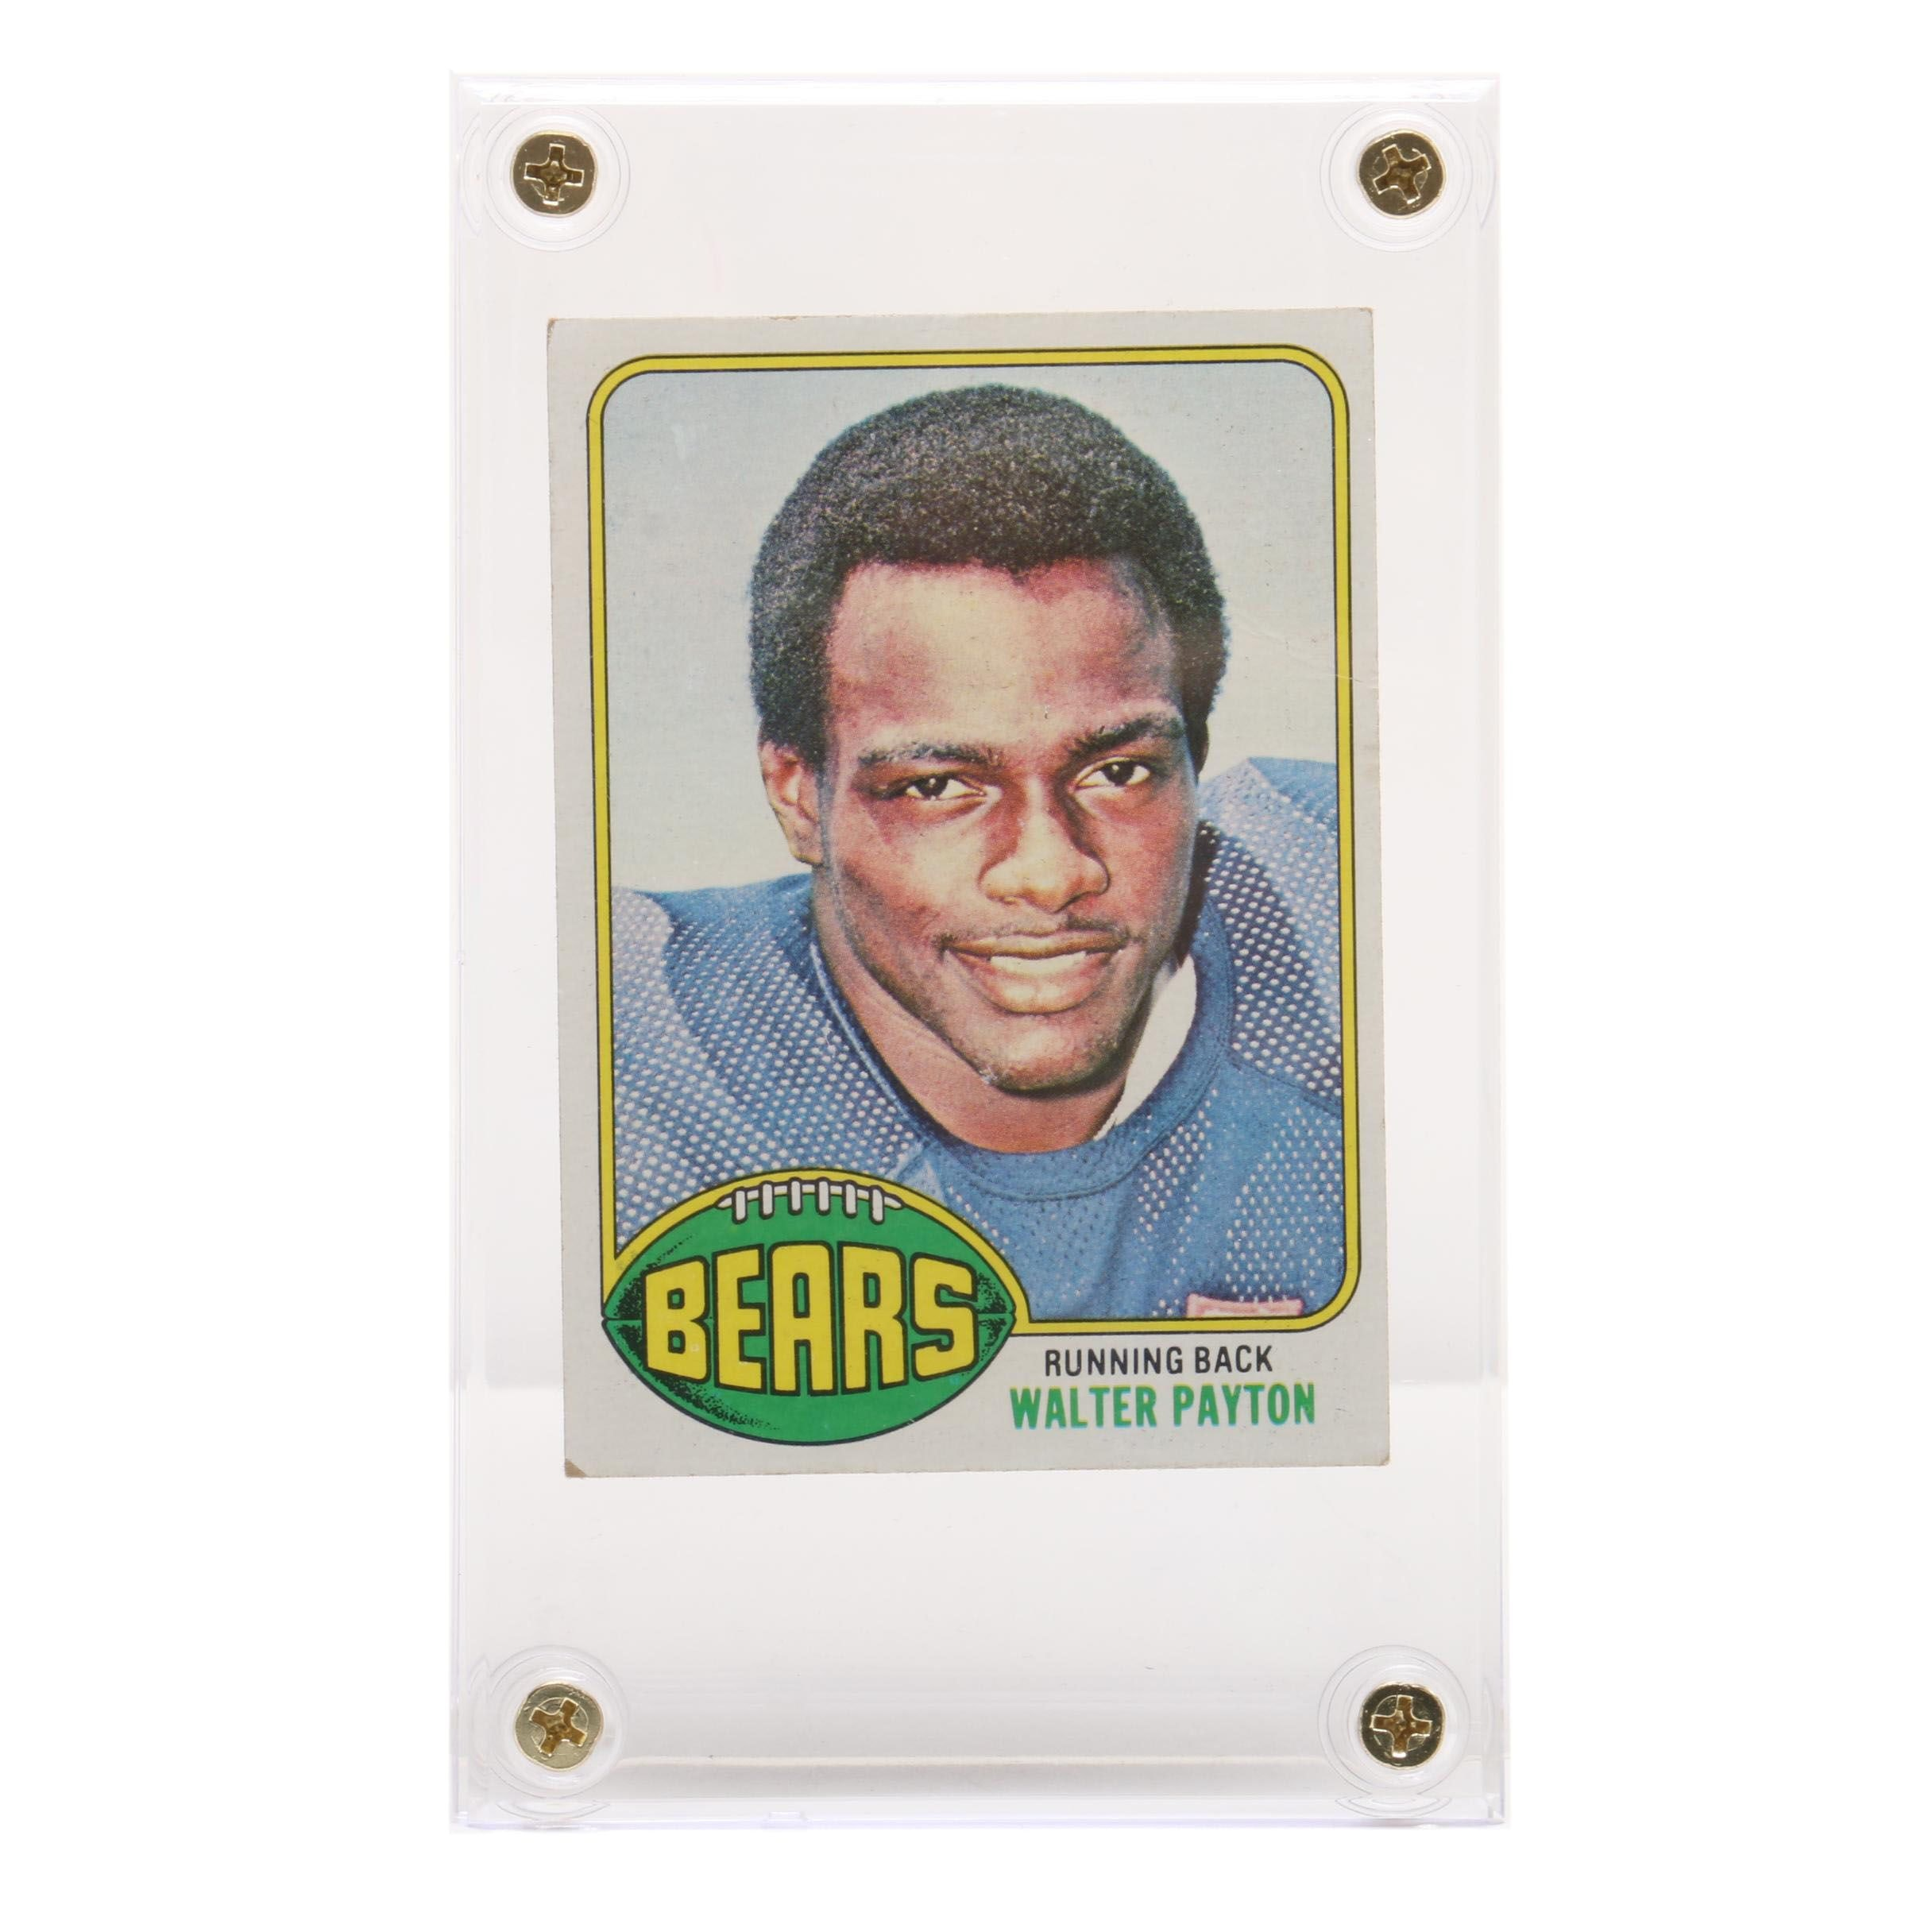 1976 Walter Payton Chicago Bears Topps Rookie Football Card